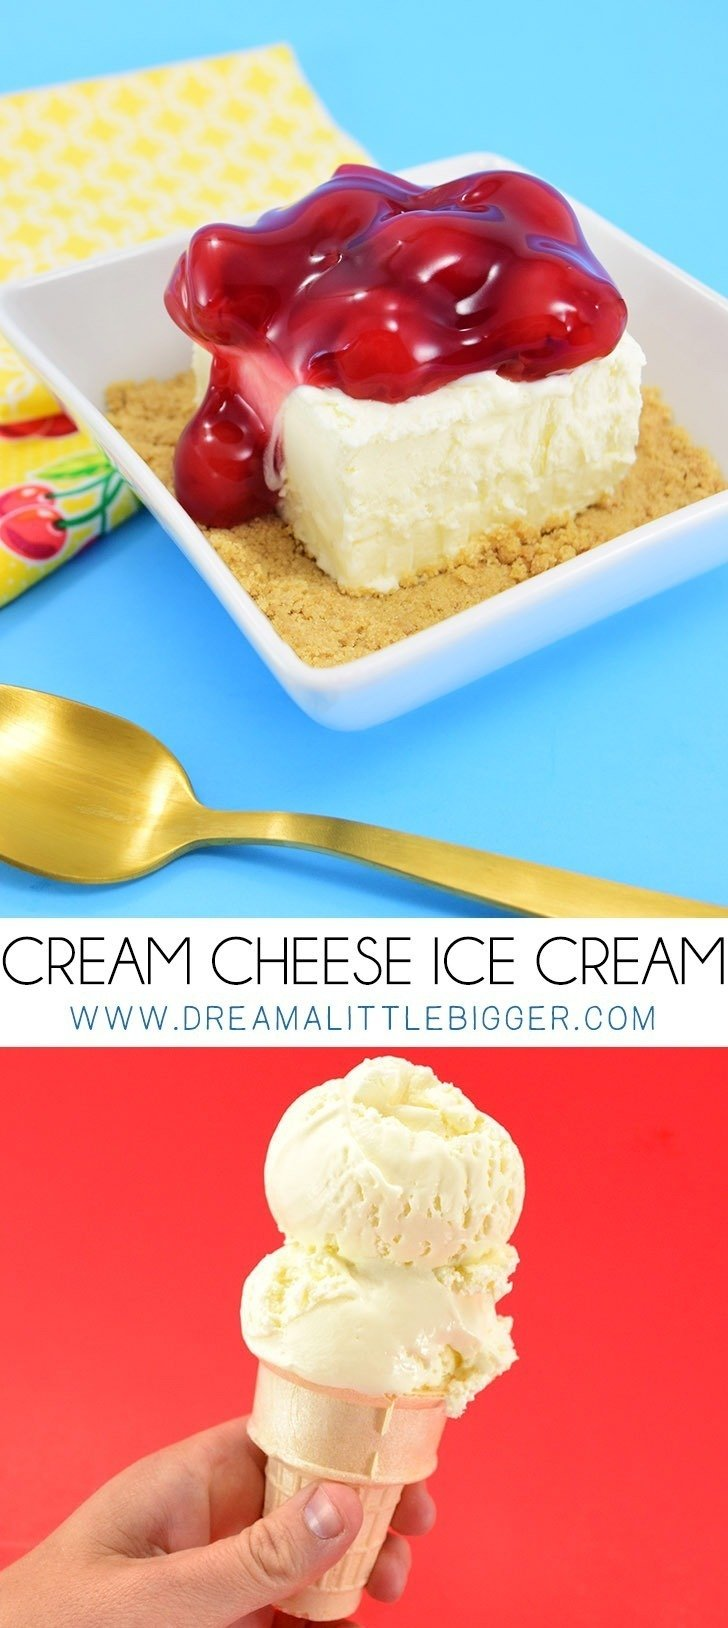 Do you love cheesecake? Do you love ice cream? You have to try this super tasty cream cheese homemade ice cream. It's SO CREAMY and NO ICE CREAM MAKER required!